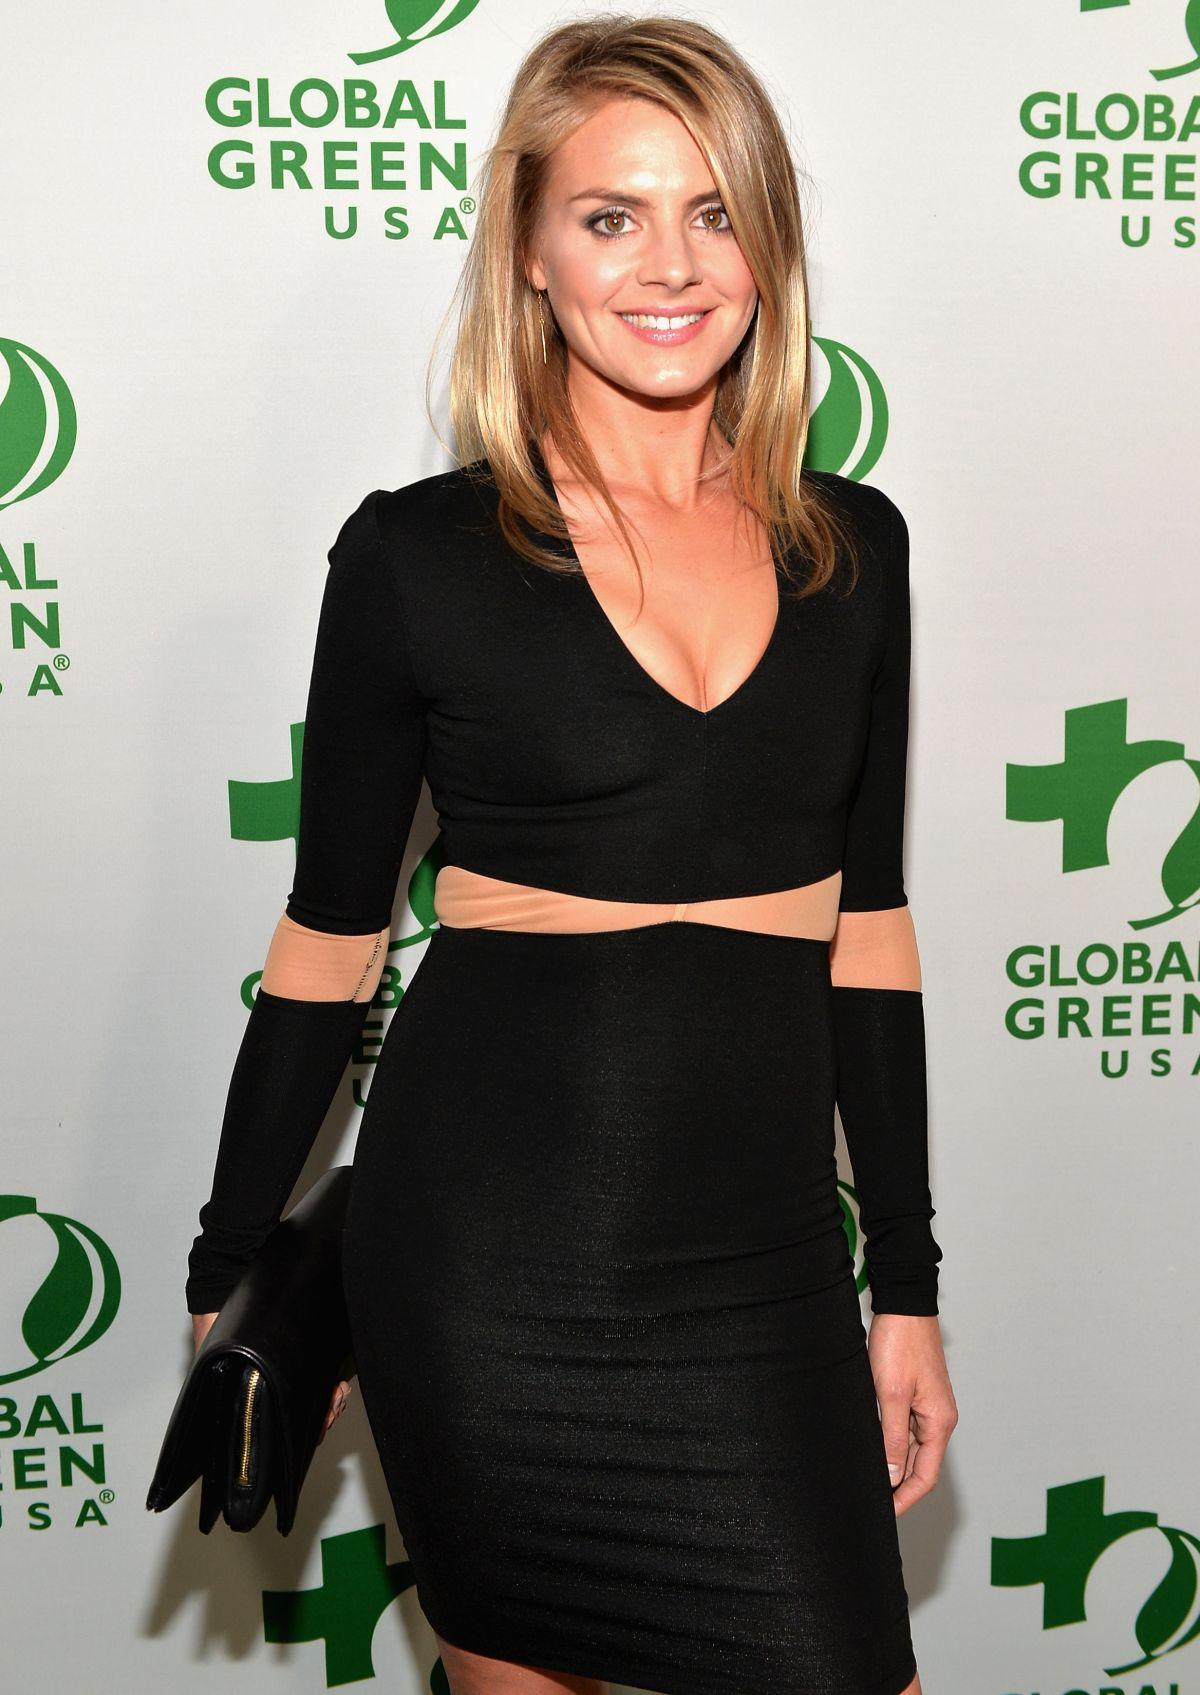 eliza coupe husbandeliza coupe height, eliza coupe photo, eliza coupe scrubs, eliza coupe zimbio, eliza coupe instagram, eliza coupe, eliza coupe twitter, eliza coupe wiki, eliza coupe happy endings, eliza coupe dailymotion, eliza coupe imdb, eliza coupe workout, eliza coupe quantico, eliza coupe husband